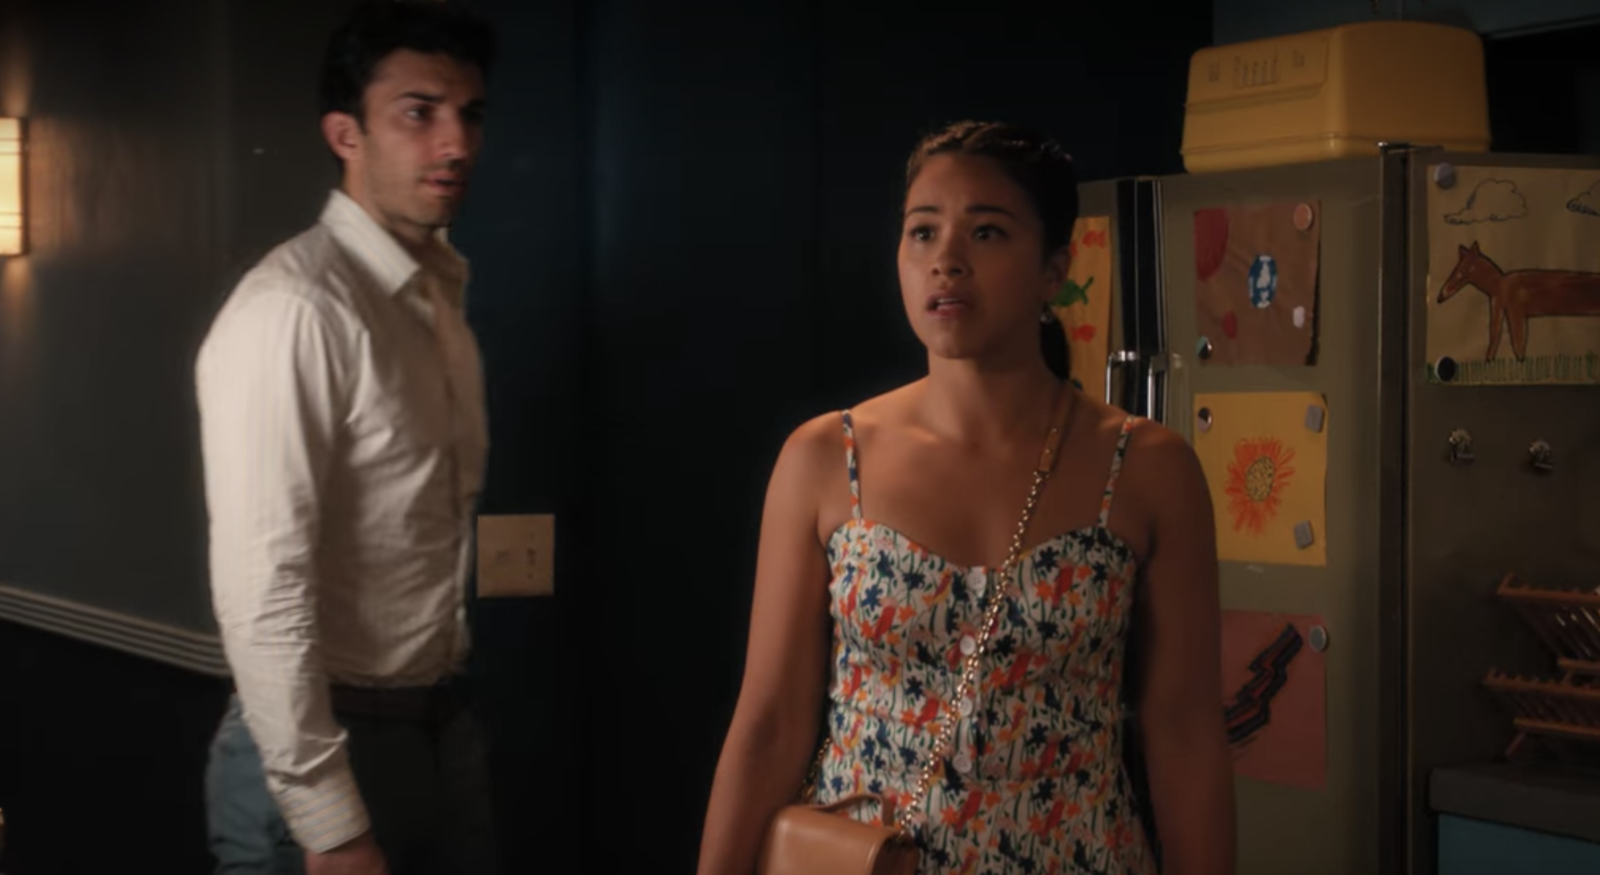 Jane The Virgin  delivered one of the craziest plot twists when Michael appeared ALIVE before Jane. -  Granted we still aren't sure if this is really Michael or another telenovela plot twist!